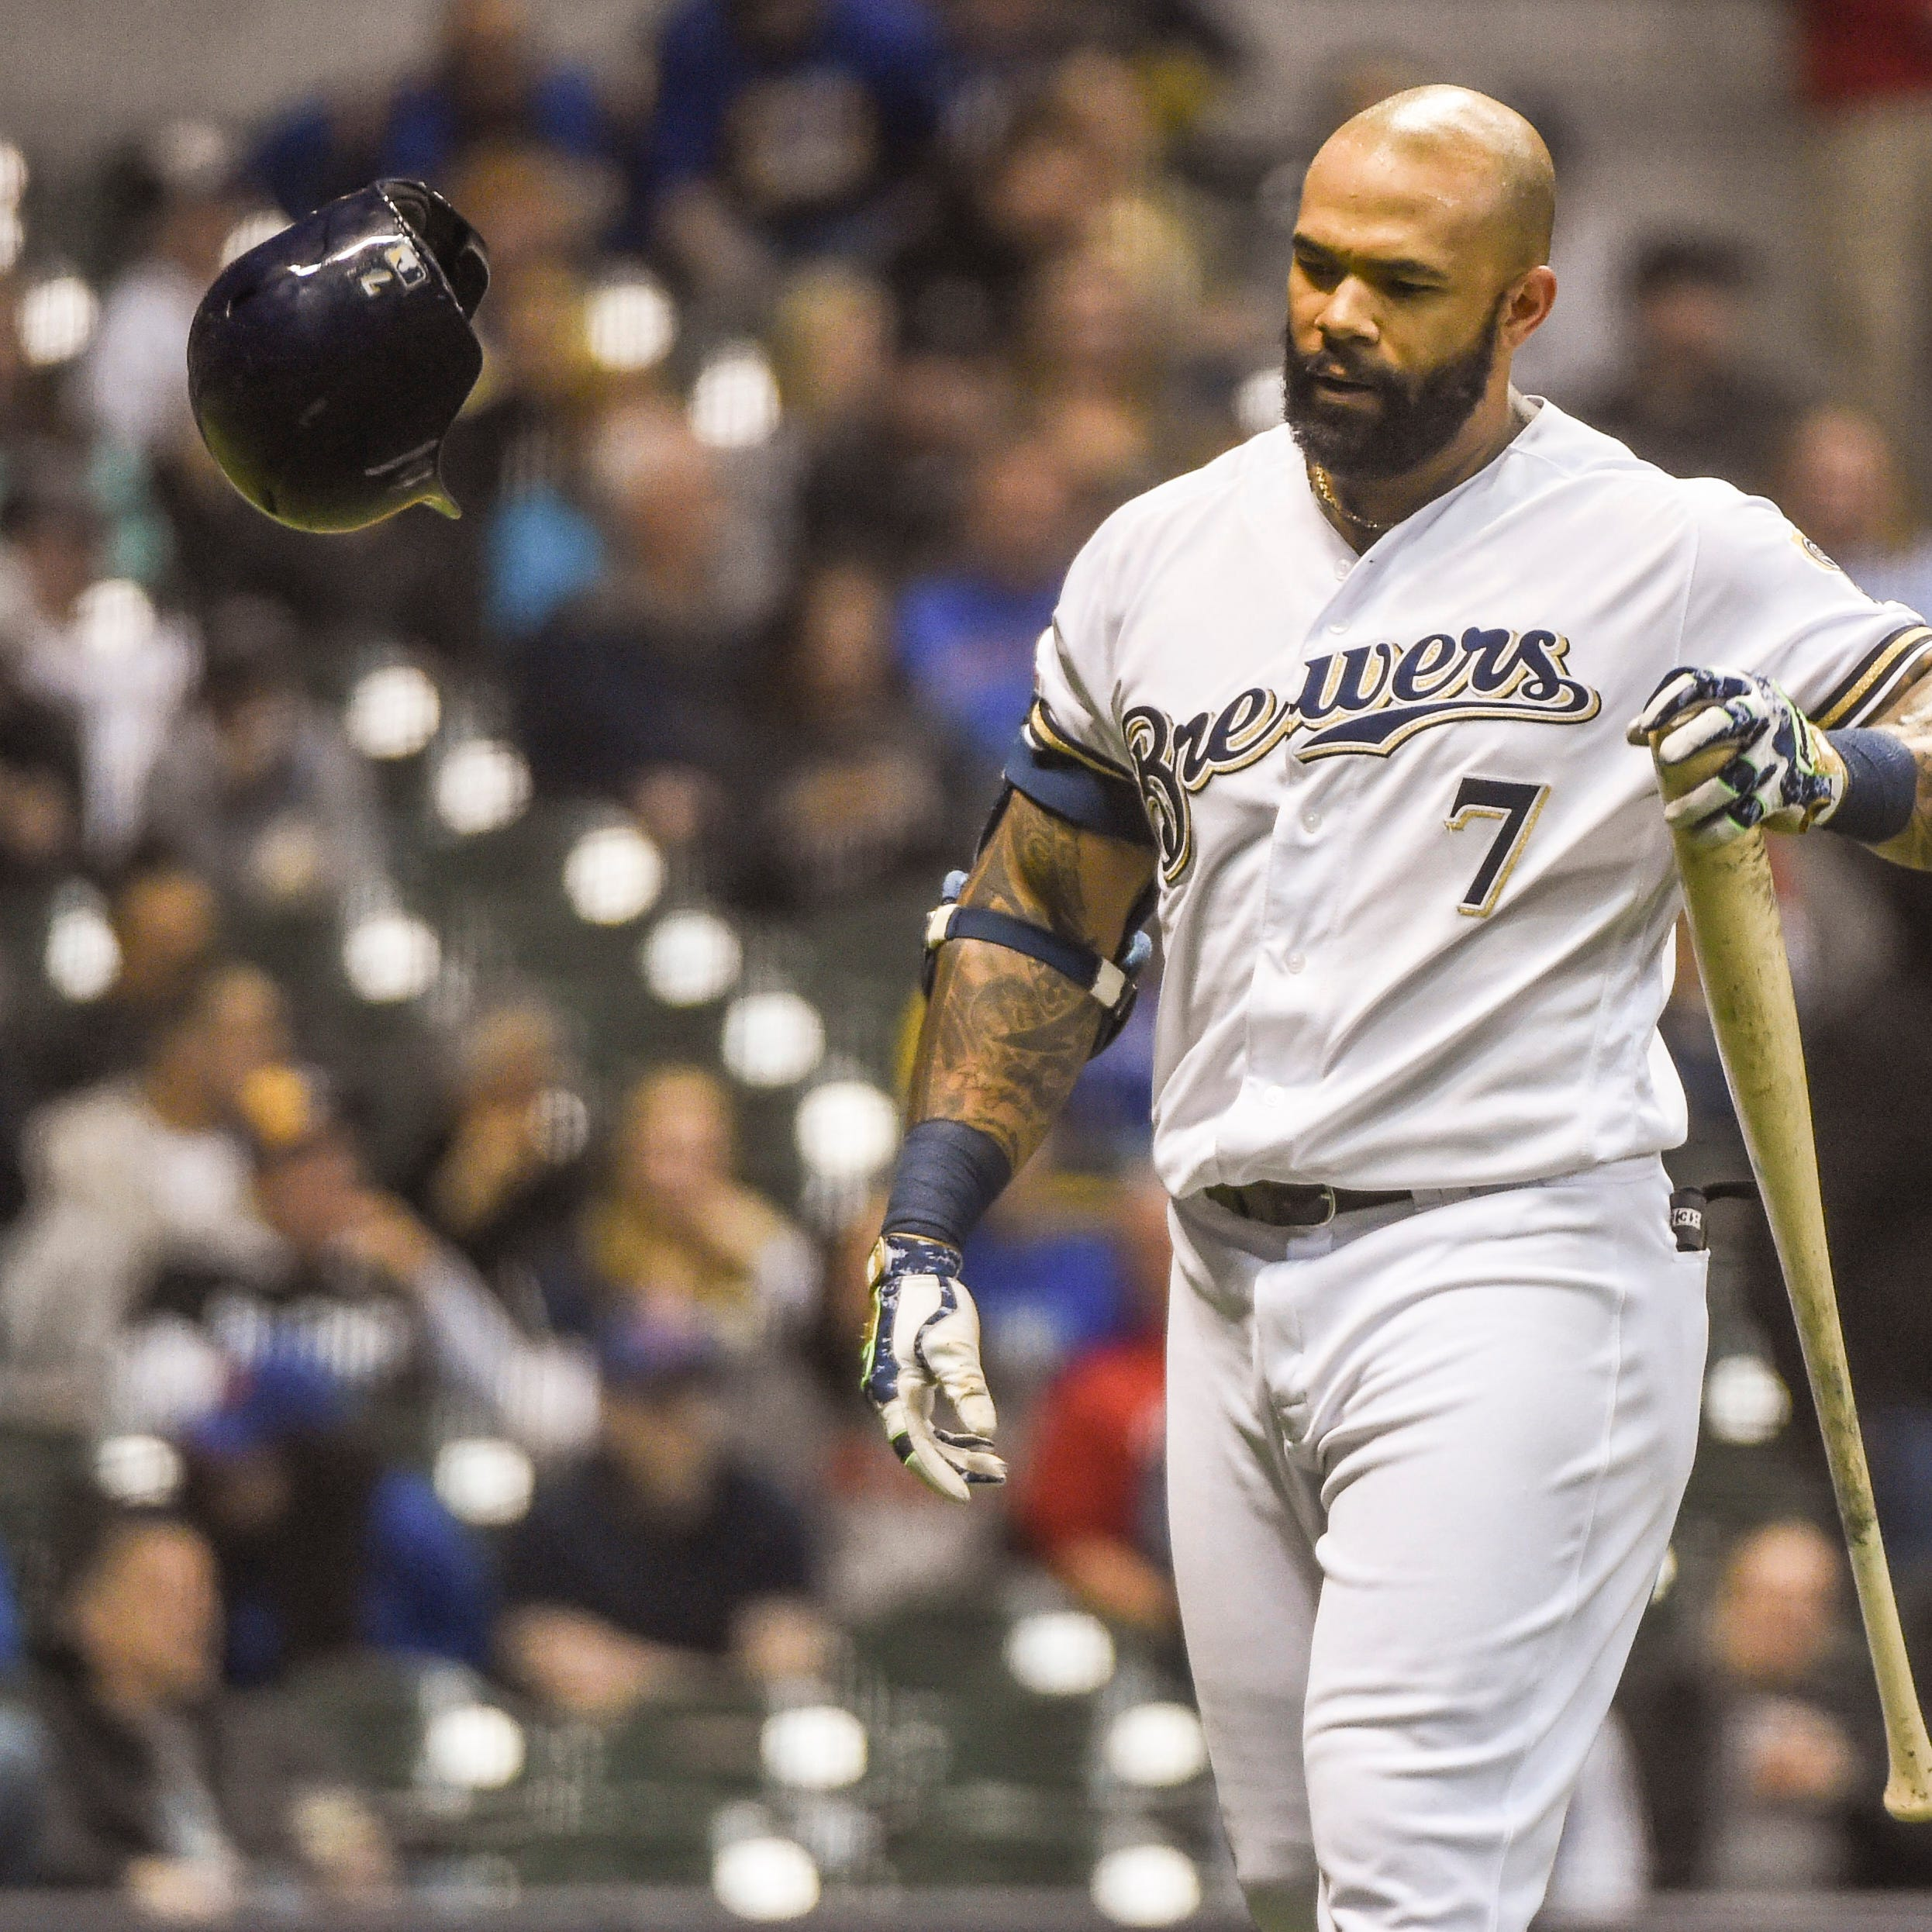 It has been Eric Thames' turn to play as Brewers search for some offense at first base